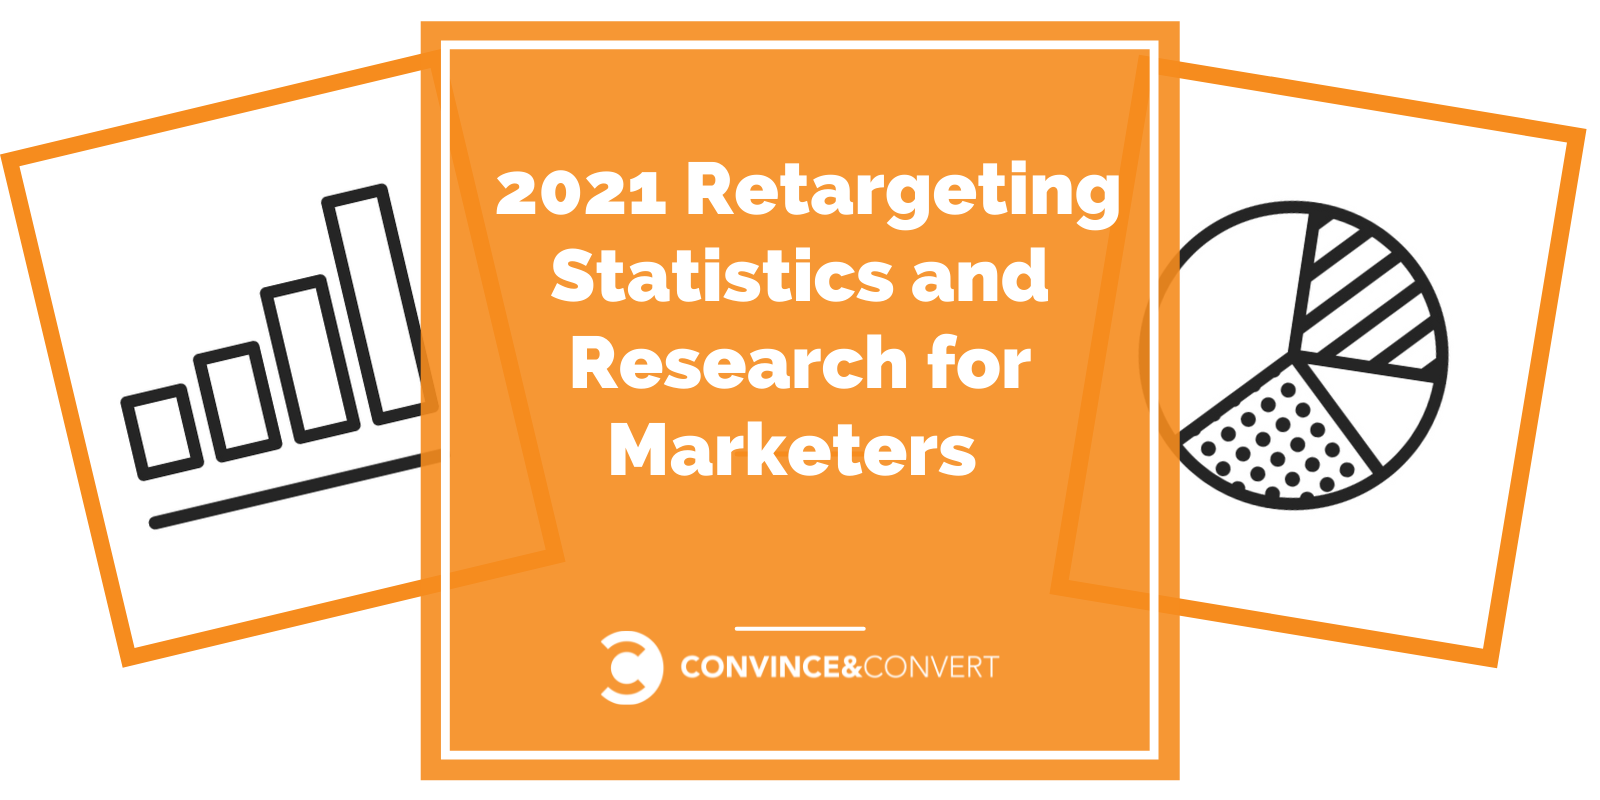 Retargeting Statistics and Analysis for 2021 Point out Challenges & Alternatives for Marketers